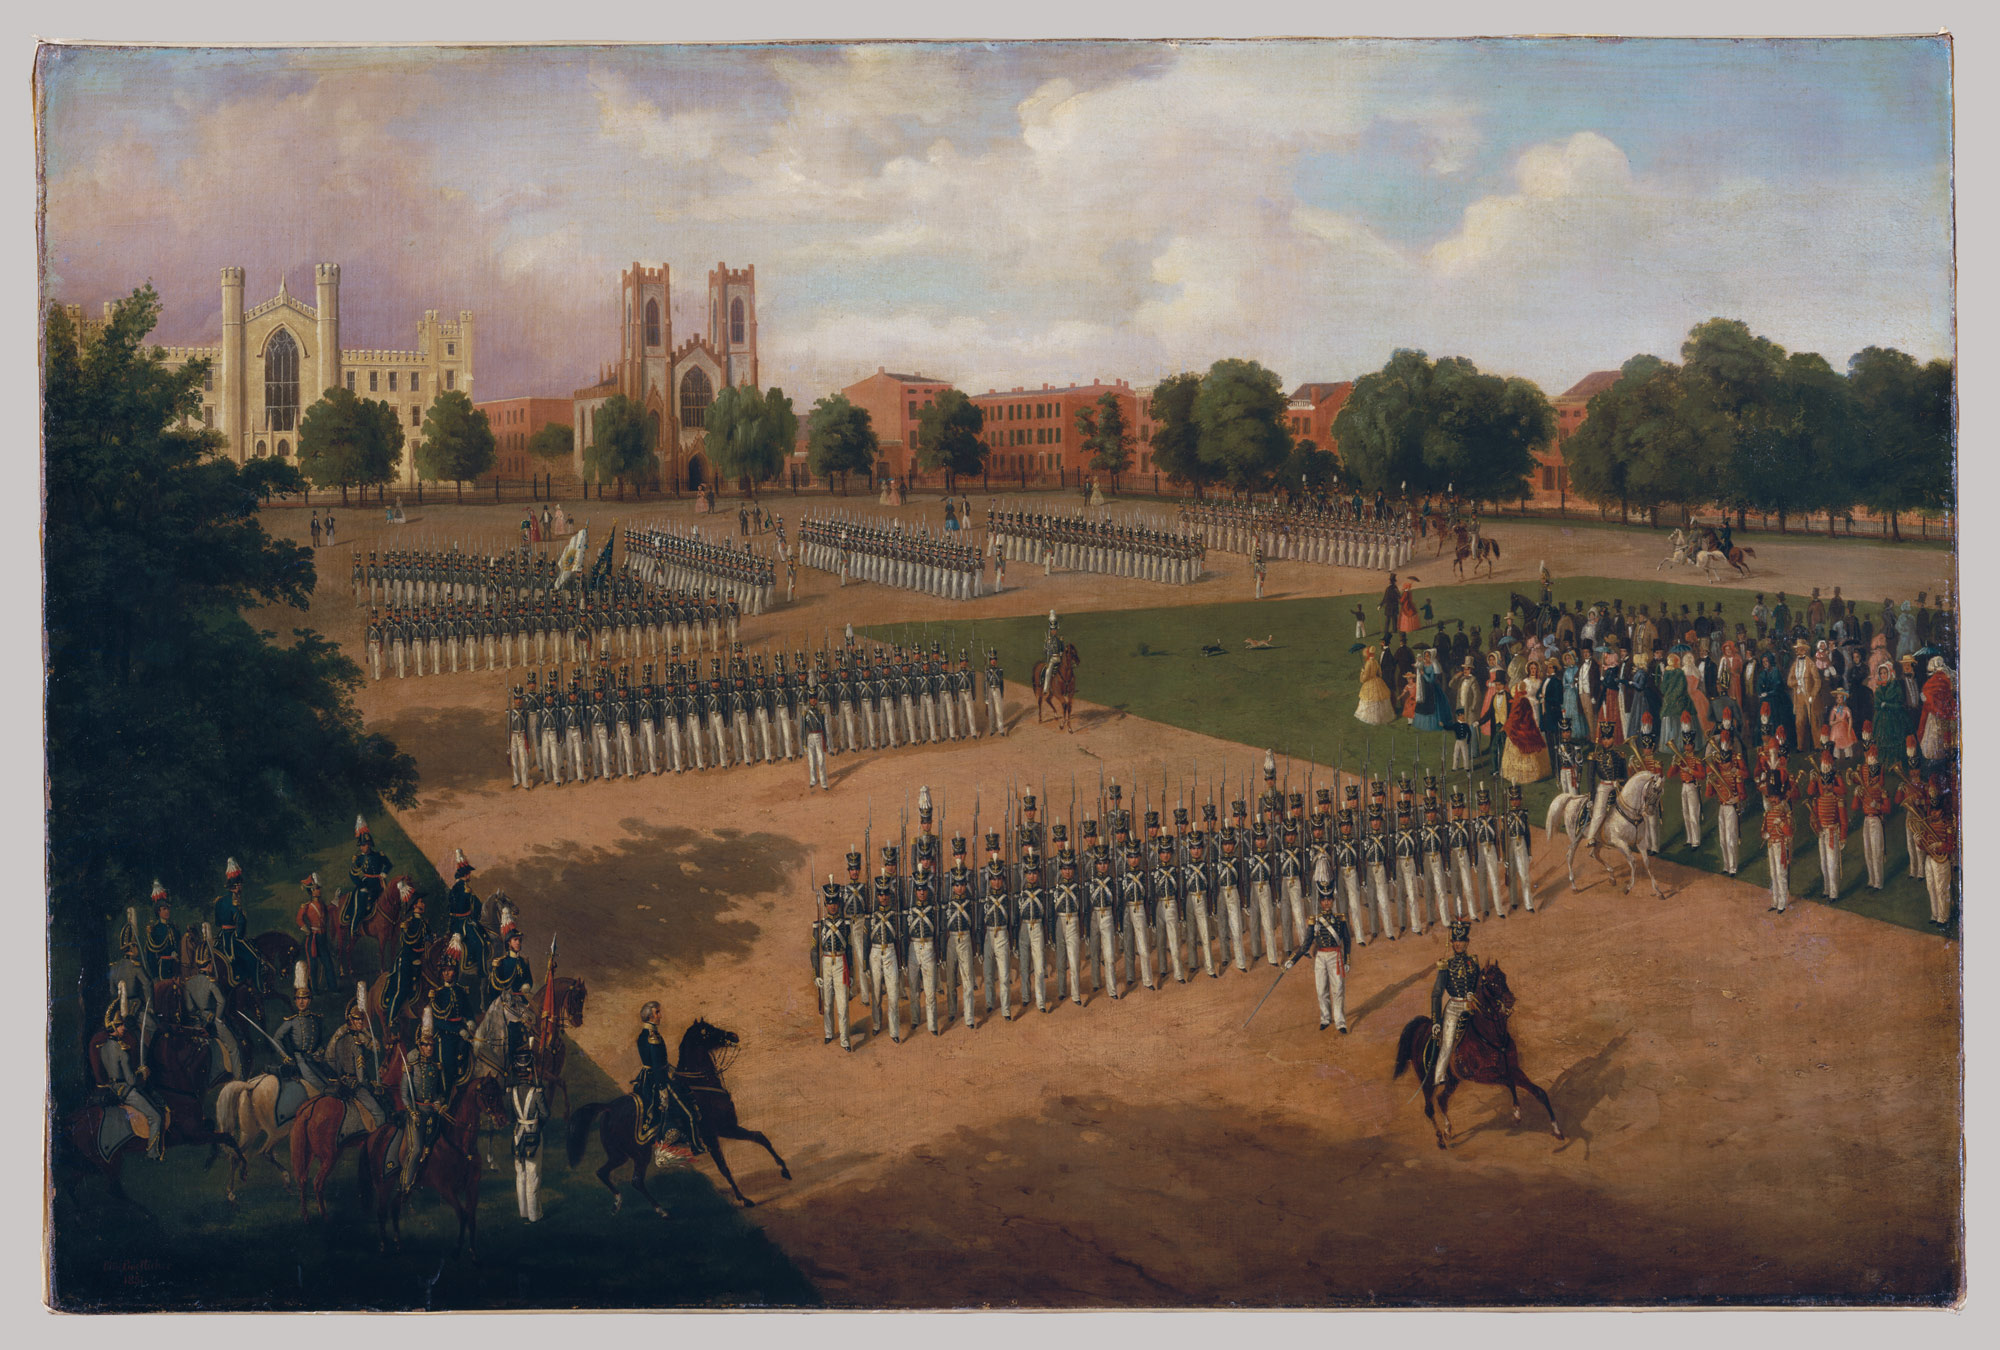 Seventh Regiment on Review, Washington Square, New York